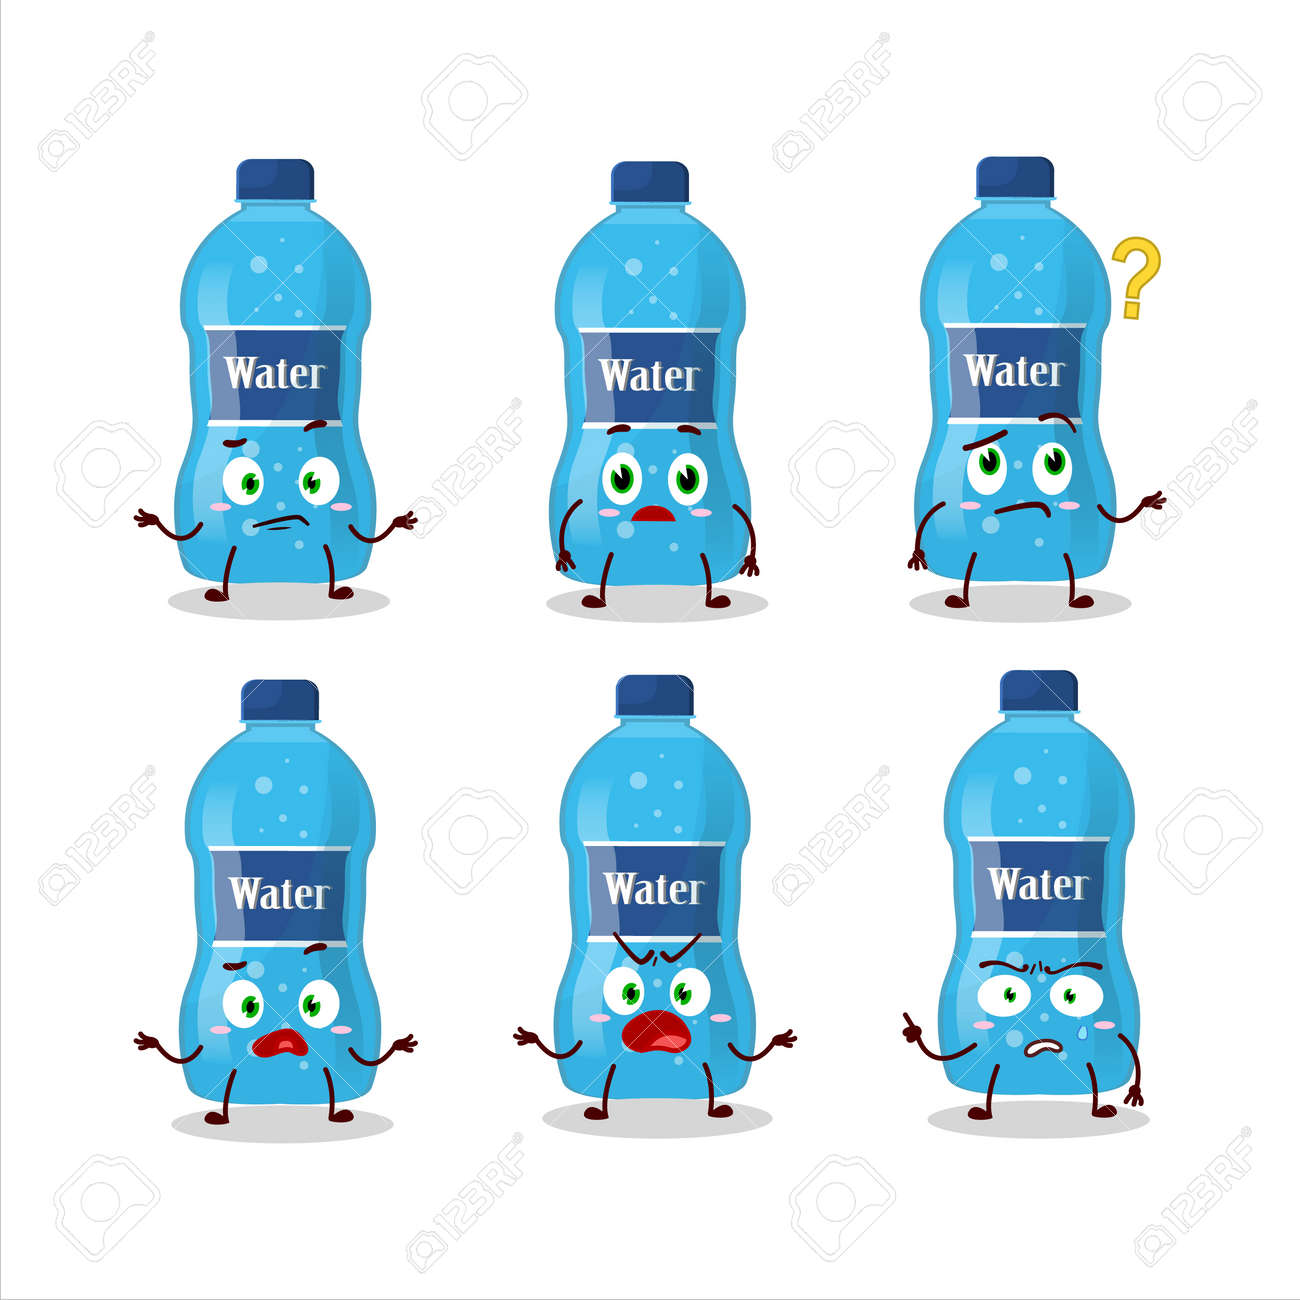 Cartoon character of water bottle with what expression - 172515422